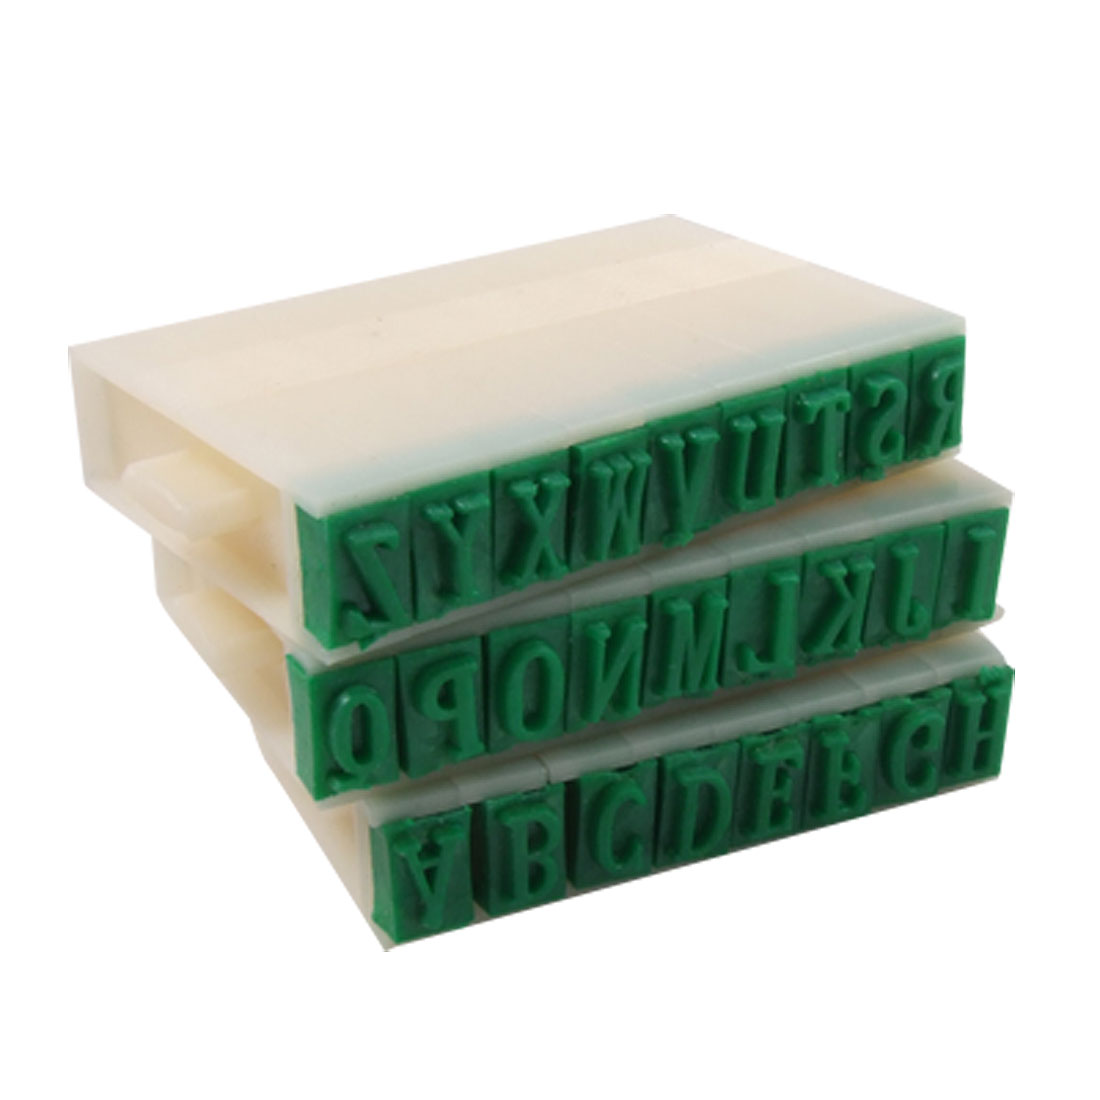 "Detachable 0.35"" x 0.24"" Plastic English Alphabet Stamp"